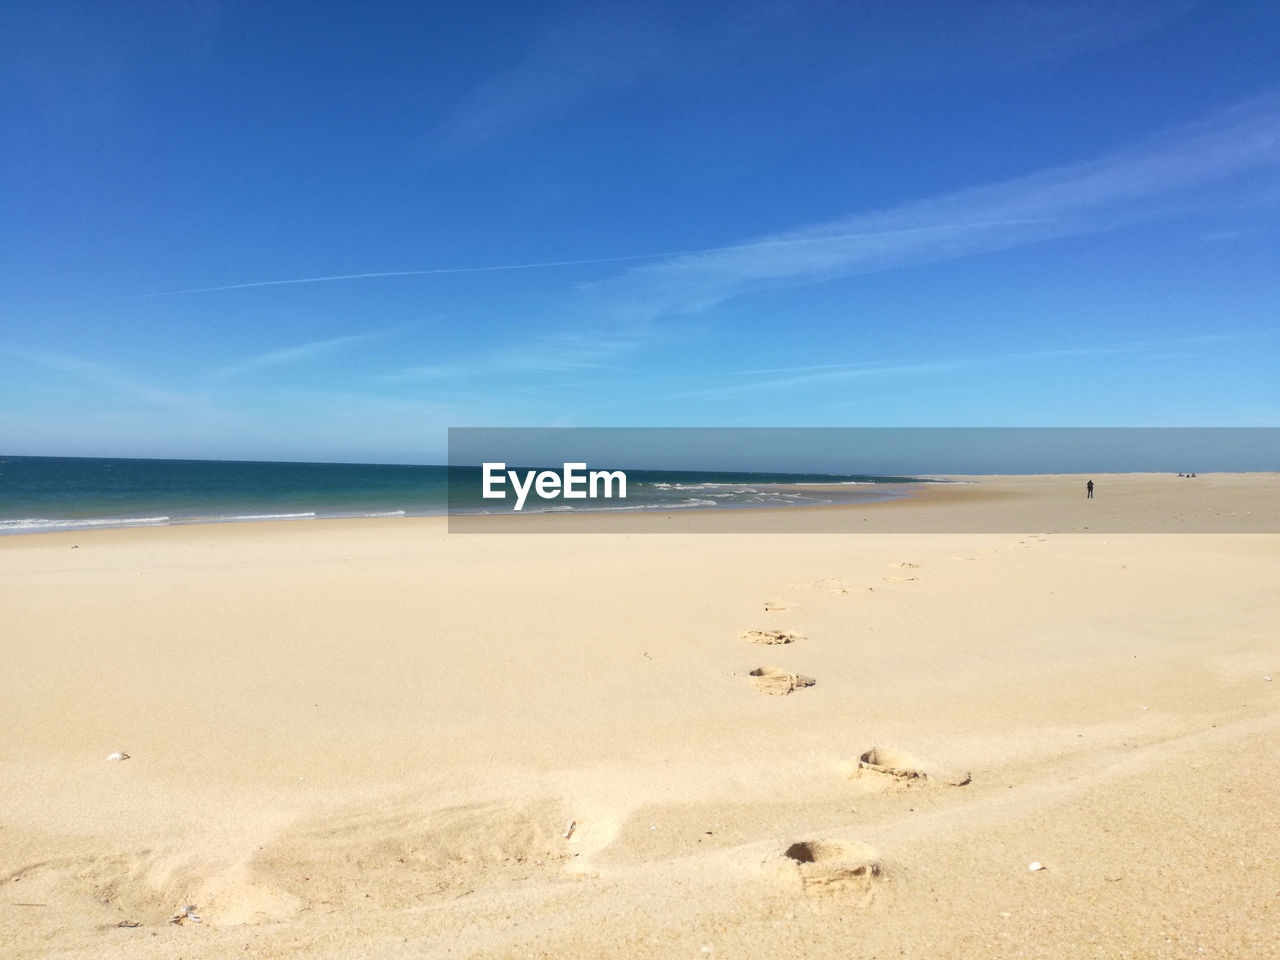 sea, beach, sand, horizon over water, nature, scenics, beauty in nature, tranquility, blue, water, shore, tranquil scene, sky, outdoors, day, no people